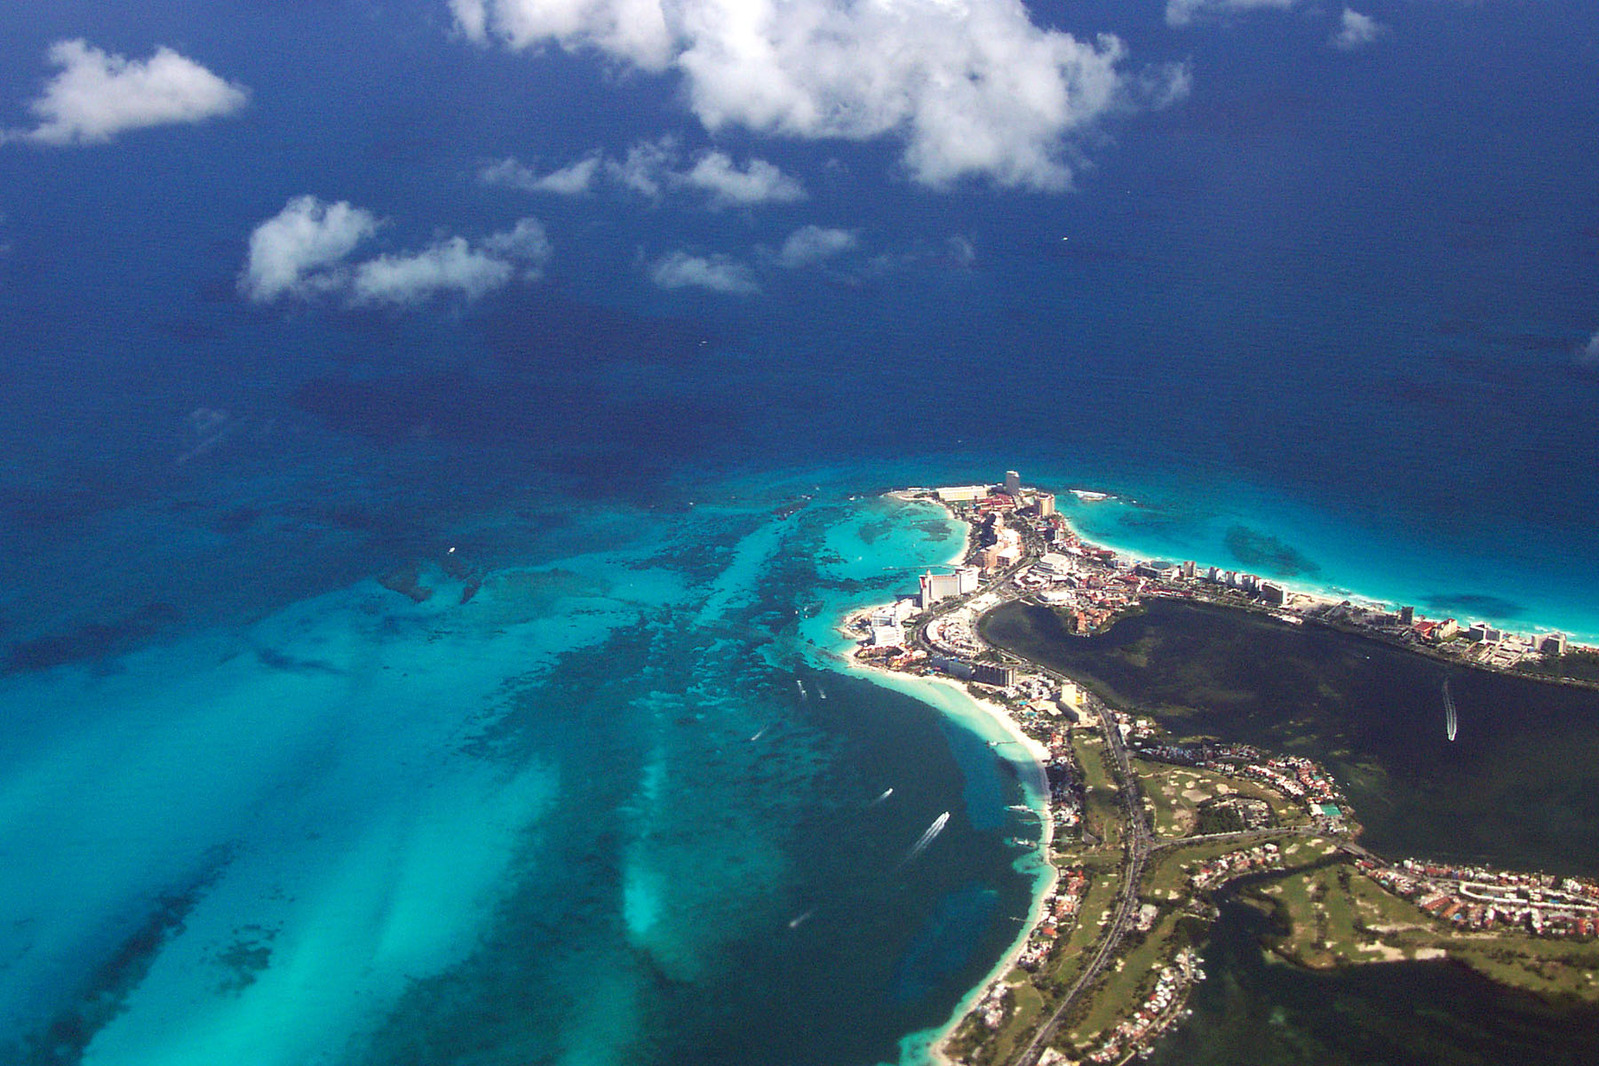 Ottawa To Cancun Mexico 297 Cad Roundtrip Including